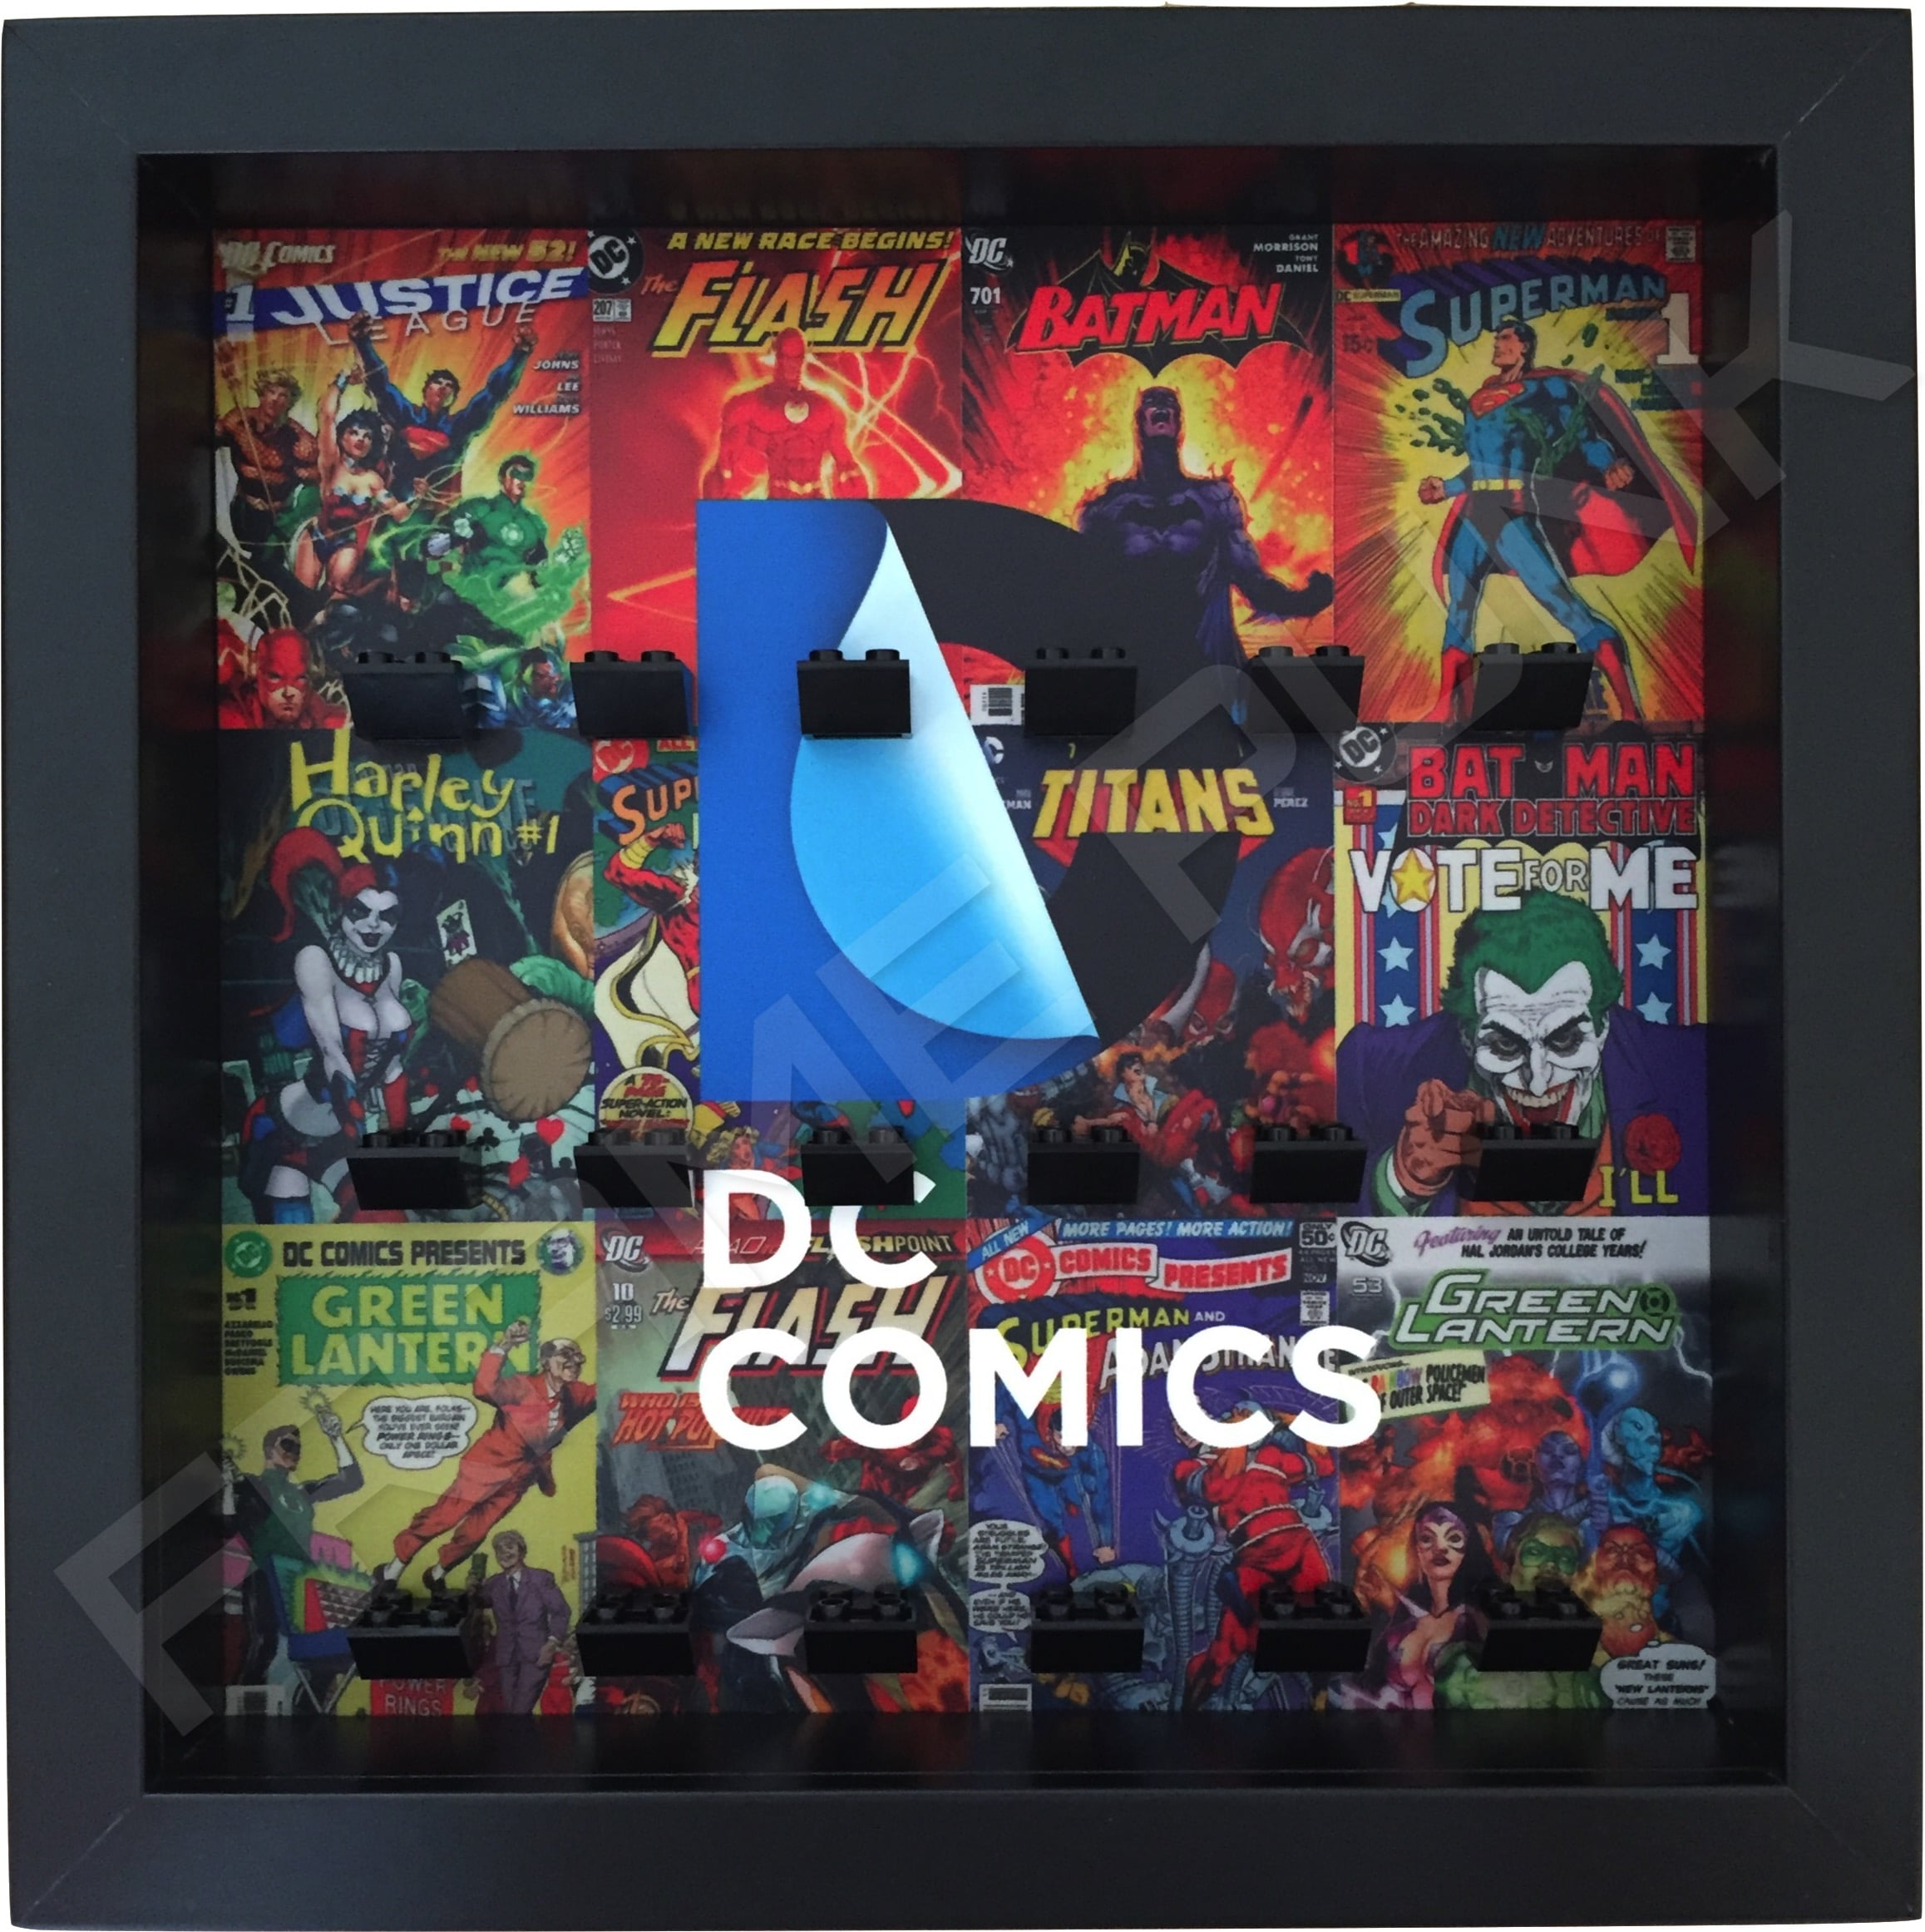 LEGO DC Comics minifigure display frame in Black